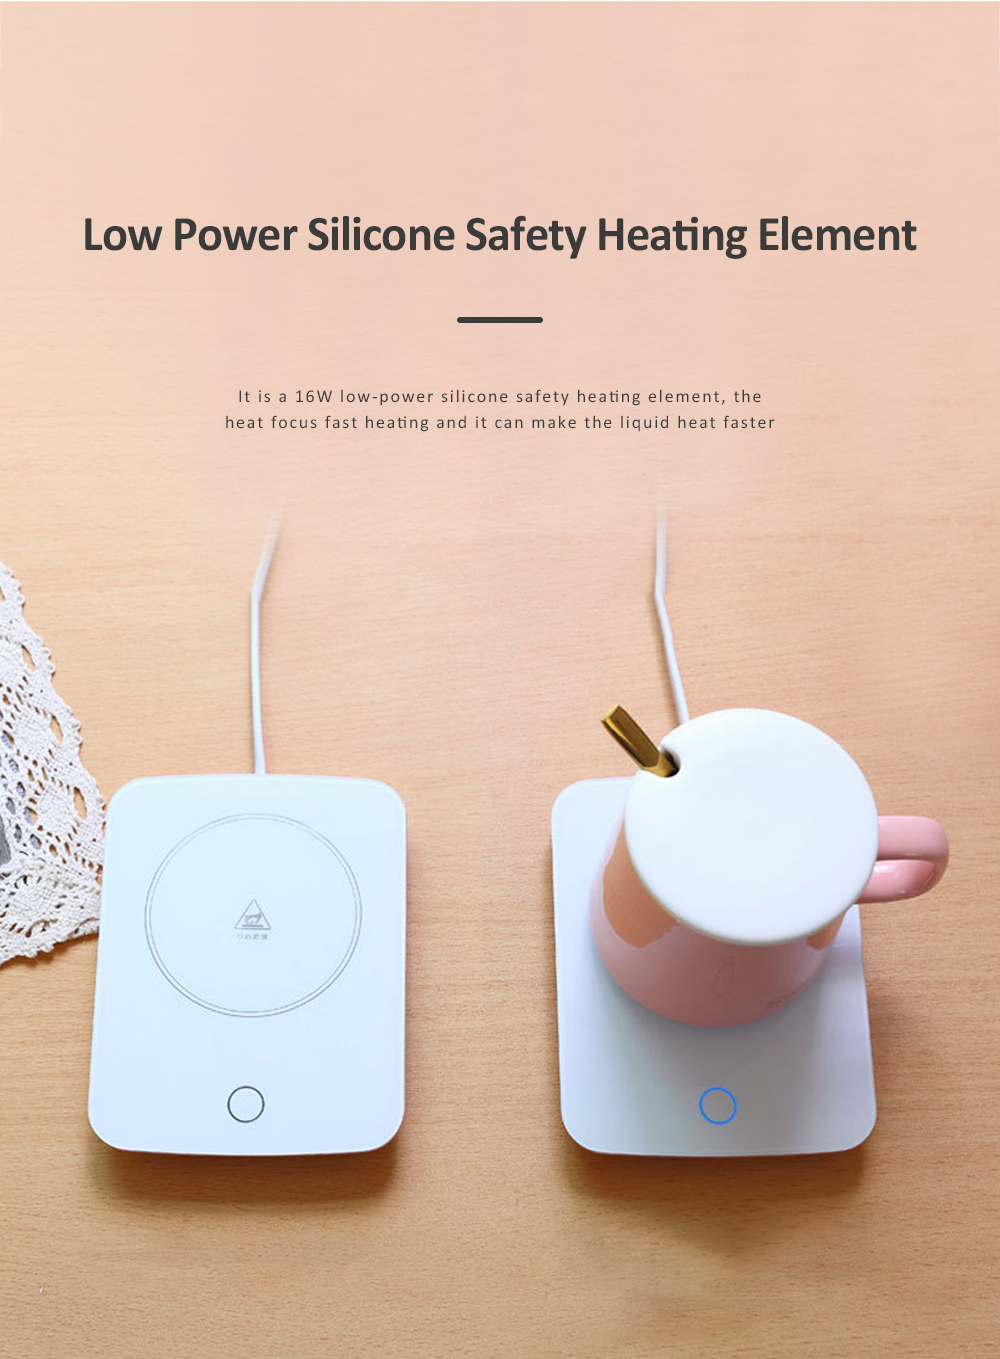 55 Degree Intelligent Thermostat Coaster Smart Insulation Office Heating Mat Warmer Milk Warmer Cup Gift With Delicate Box Valentine Gift 5